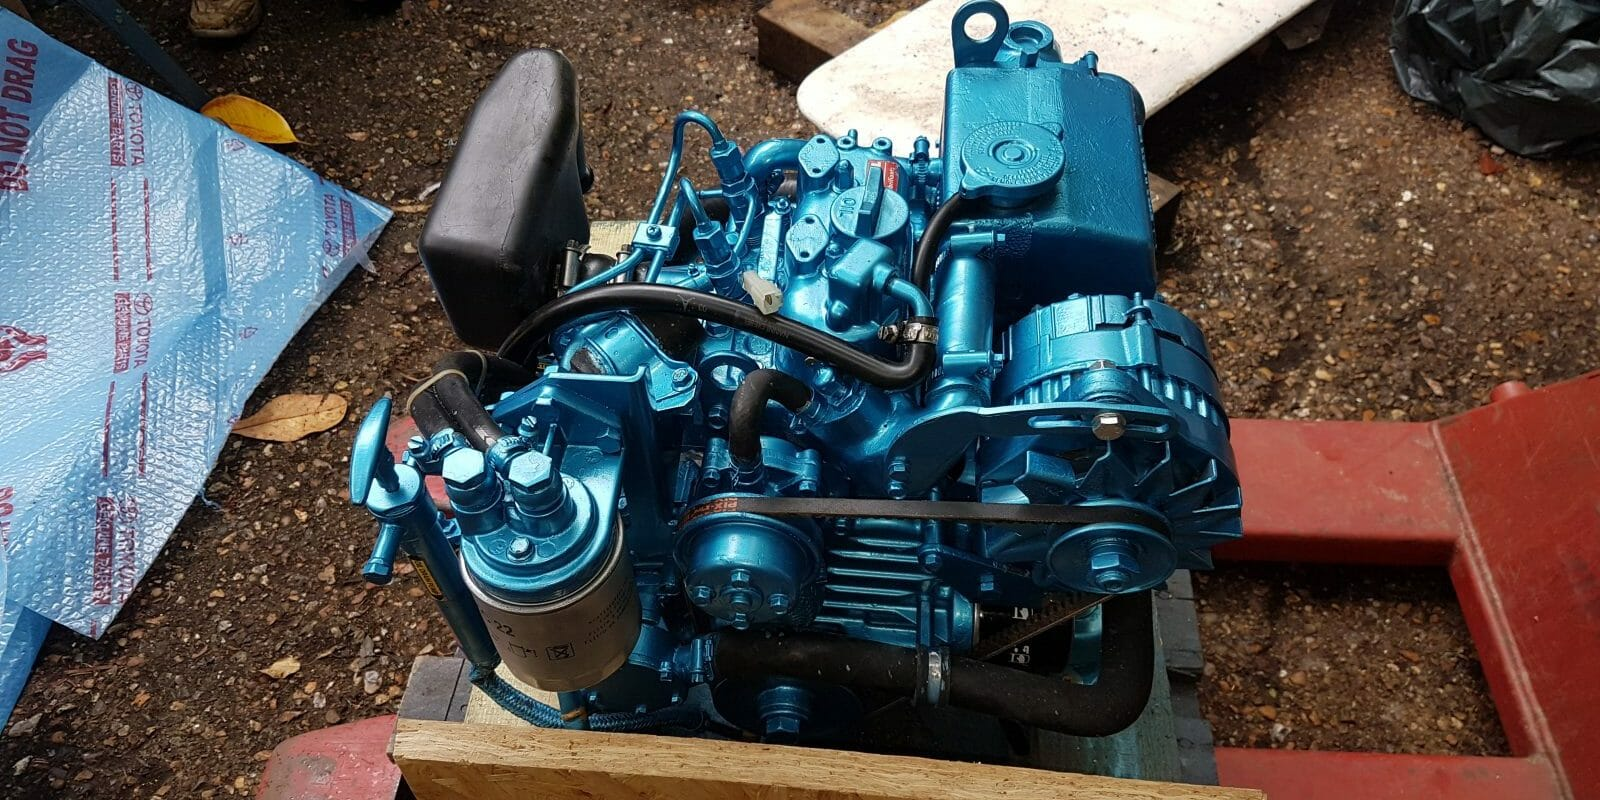 New engine for A5 - Nanni 250HE 14hp